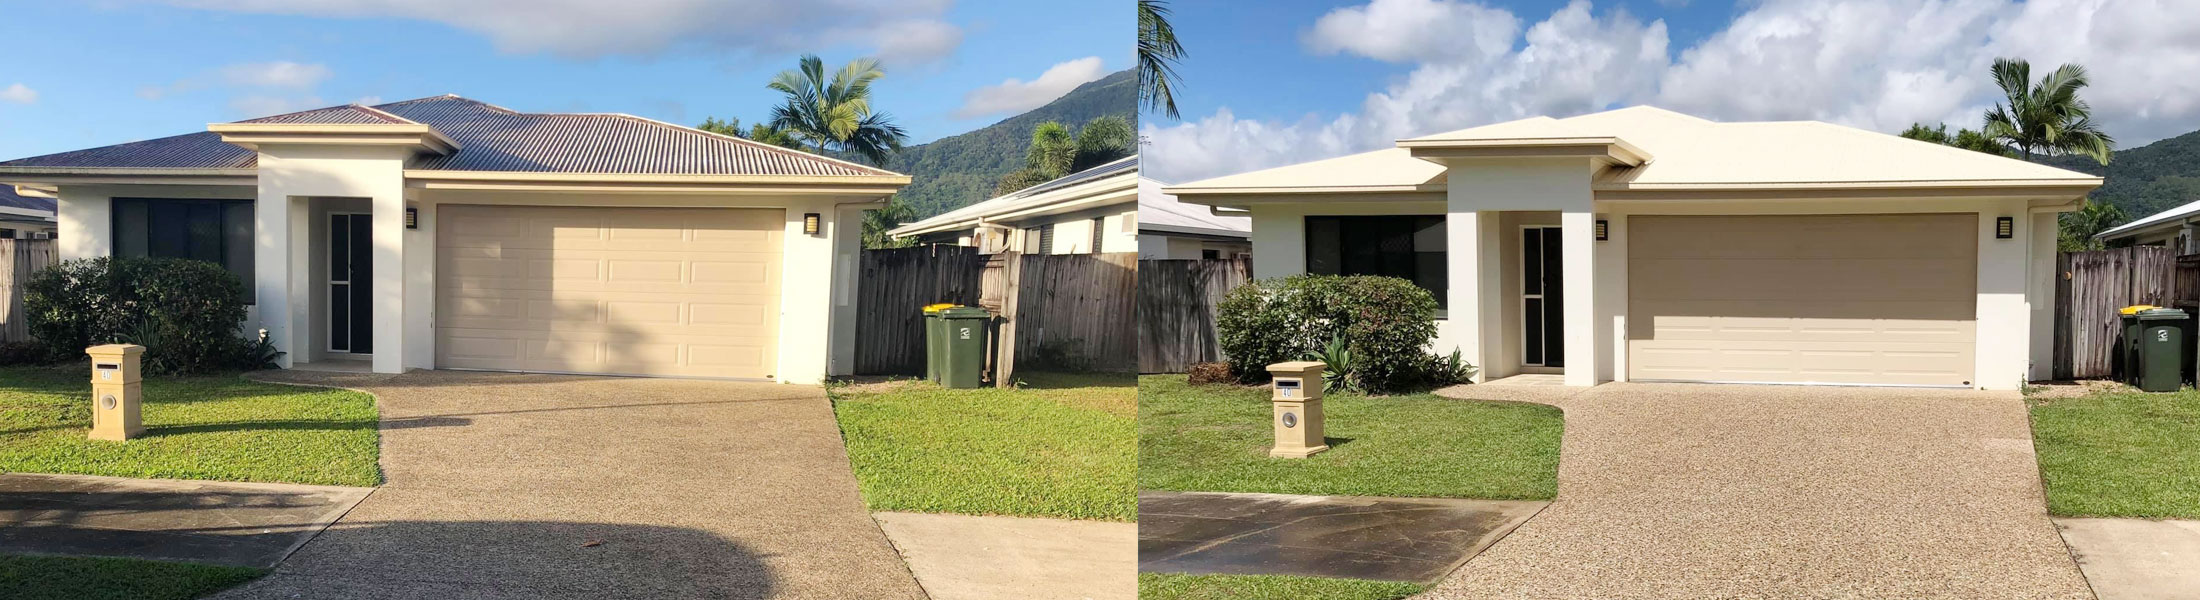 Cairns pressure cleaning houses